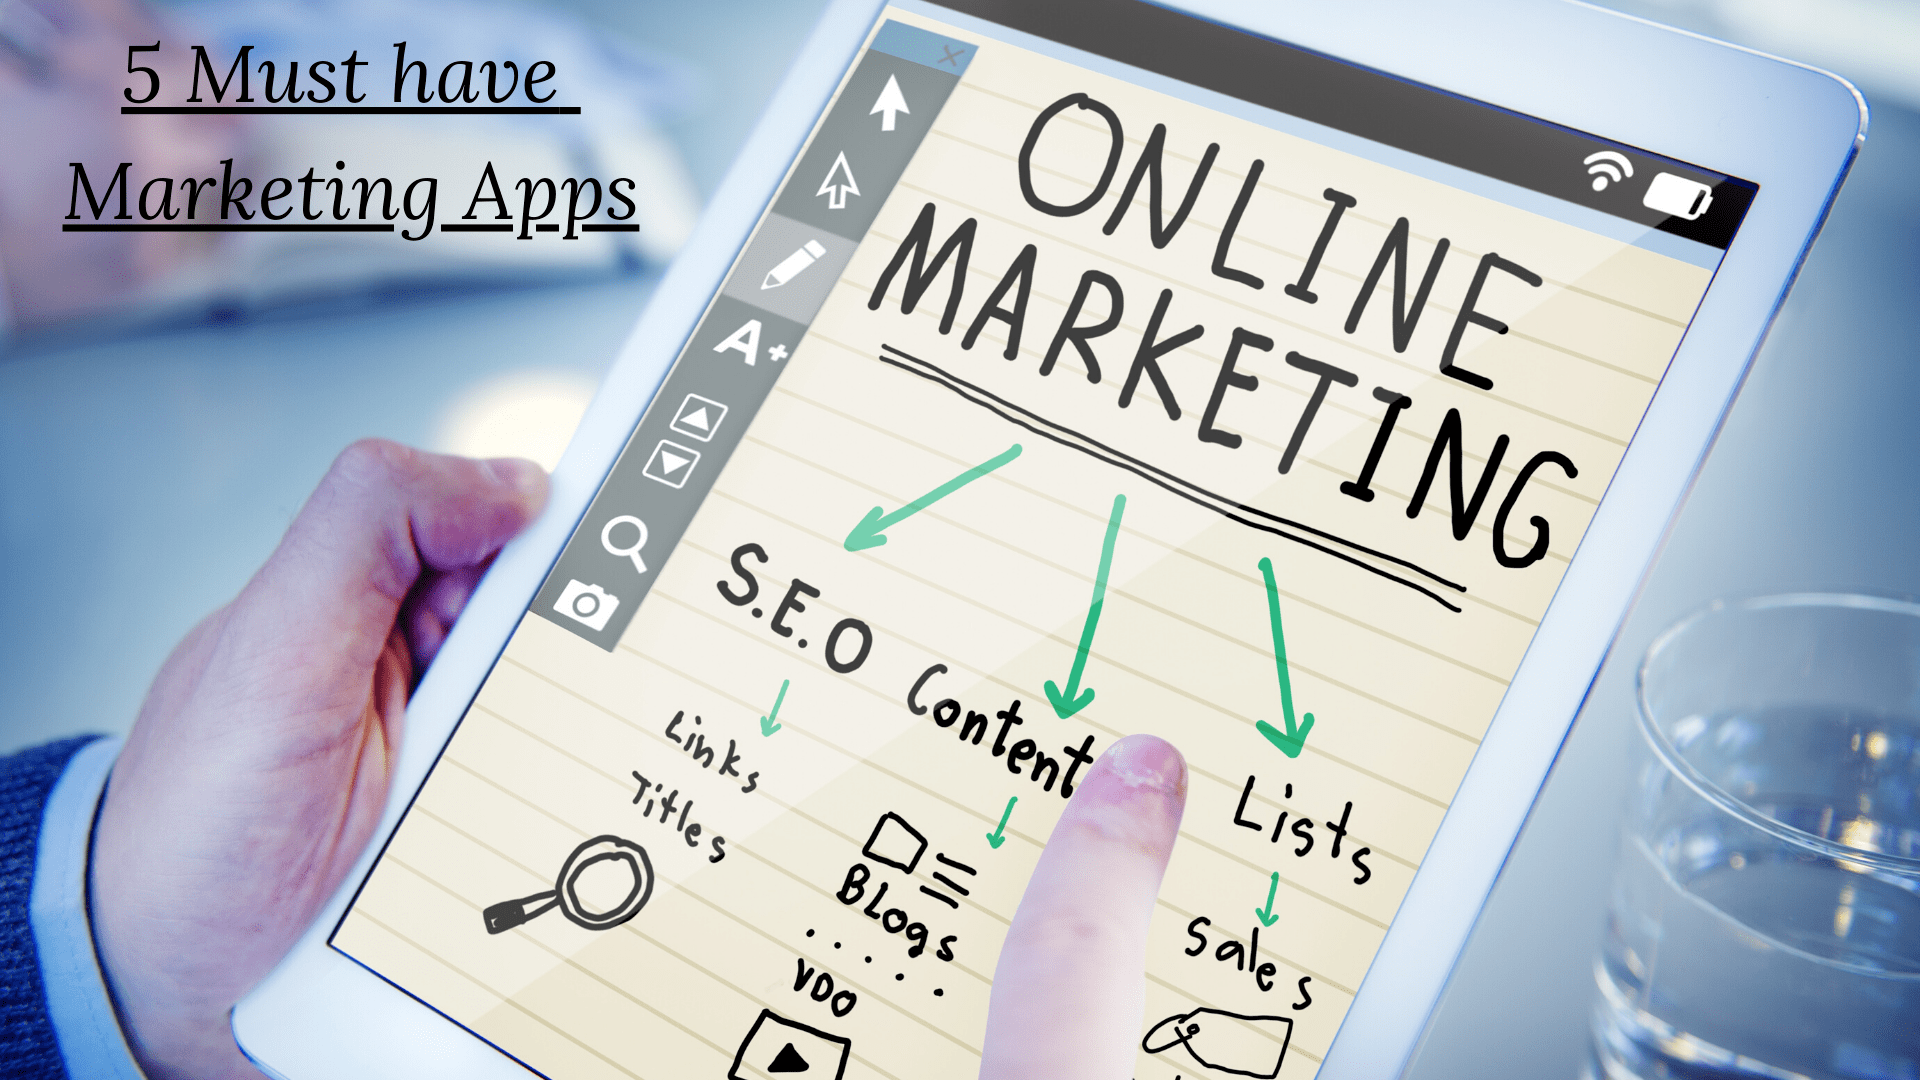 Top 5 marketing apps